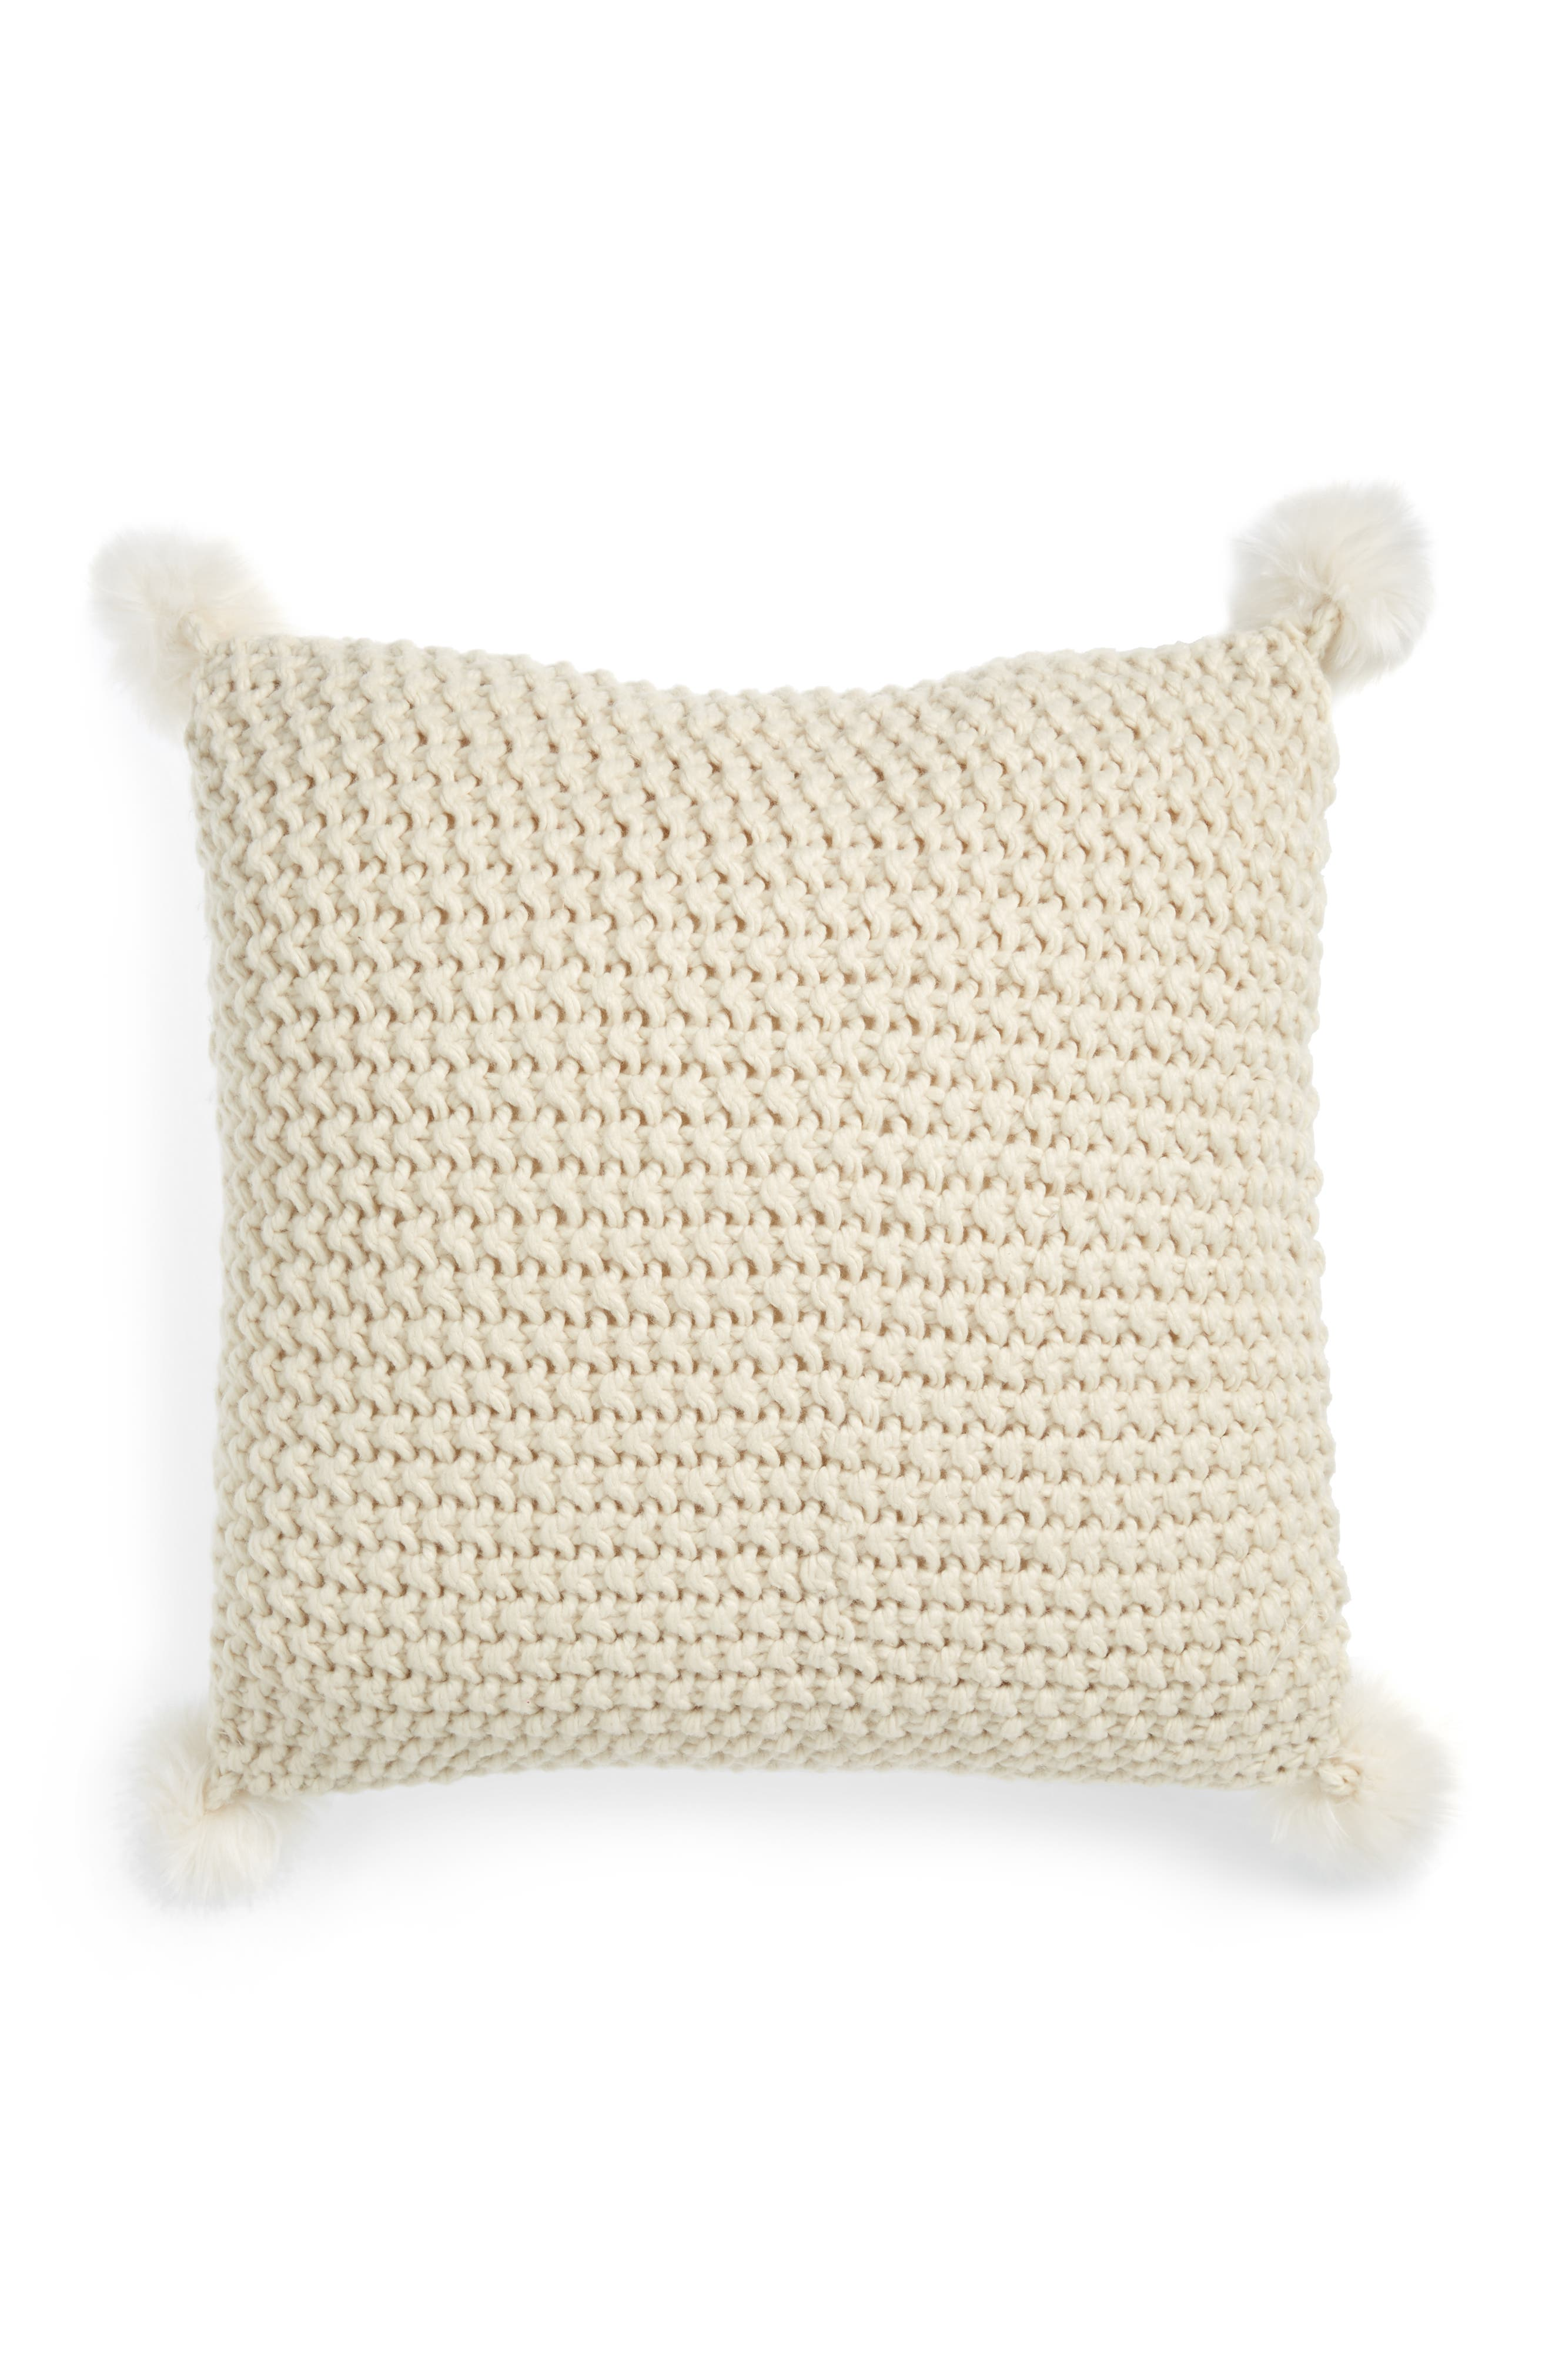 Knit Accent Pillow with Faux Fur Poms,                             Alternate thumbnail 2, color,                             IVORY